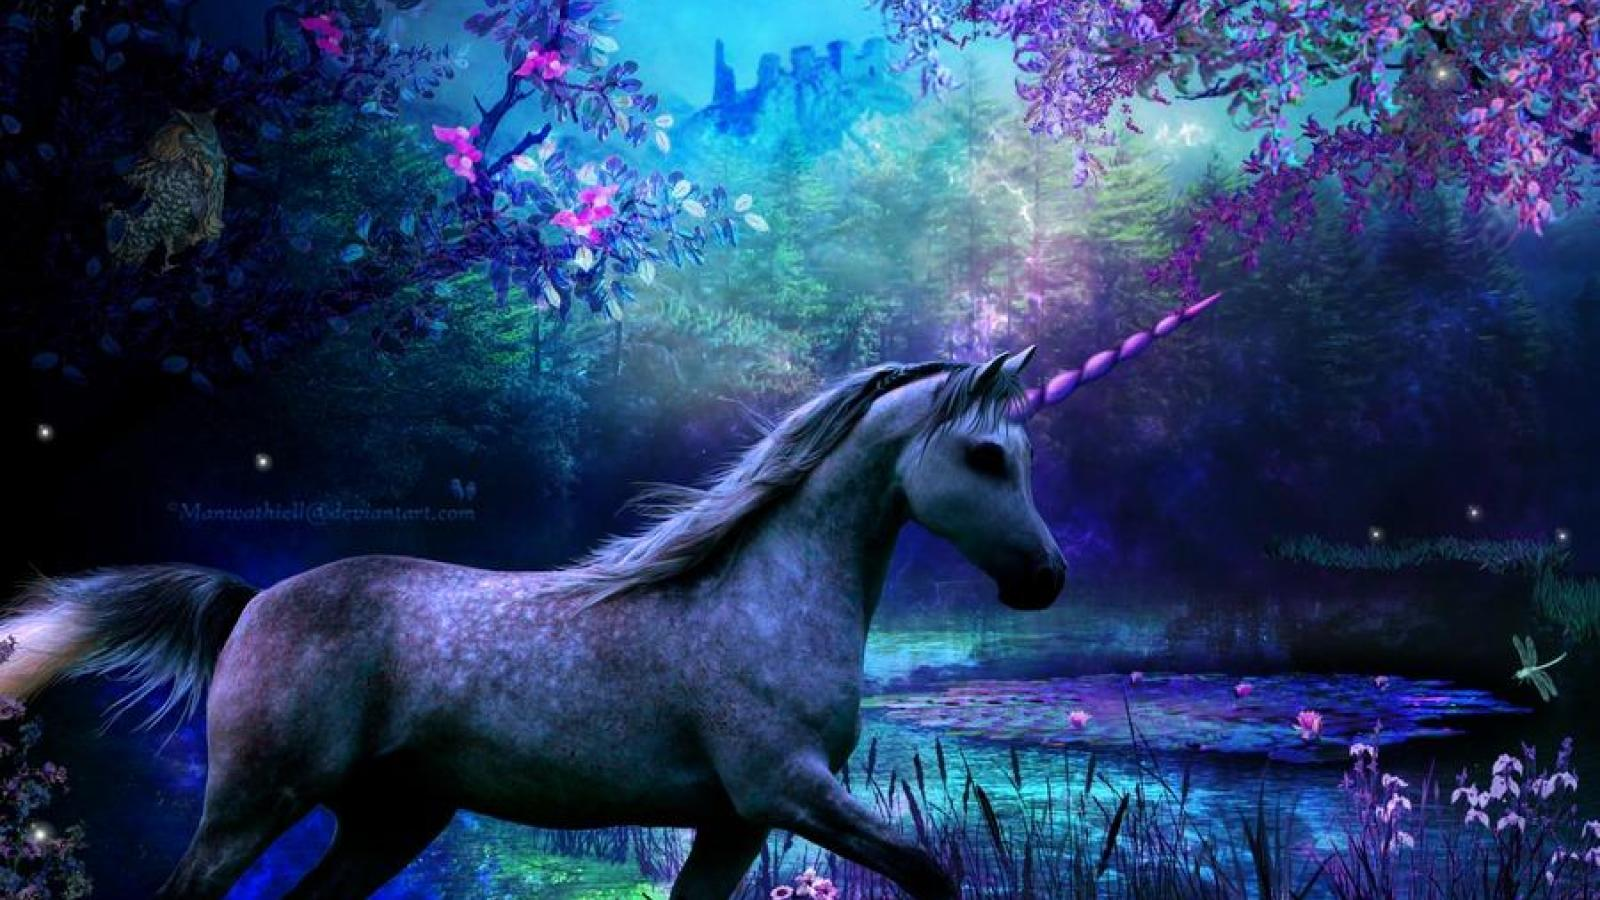 unicorn wallpapers full hd - photo #24